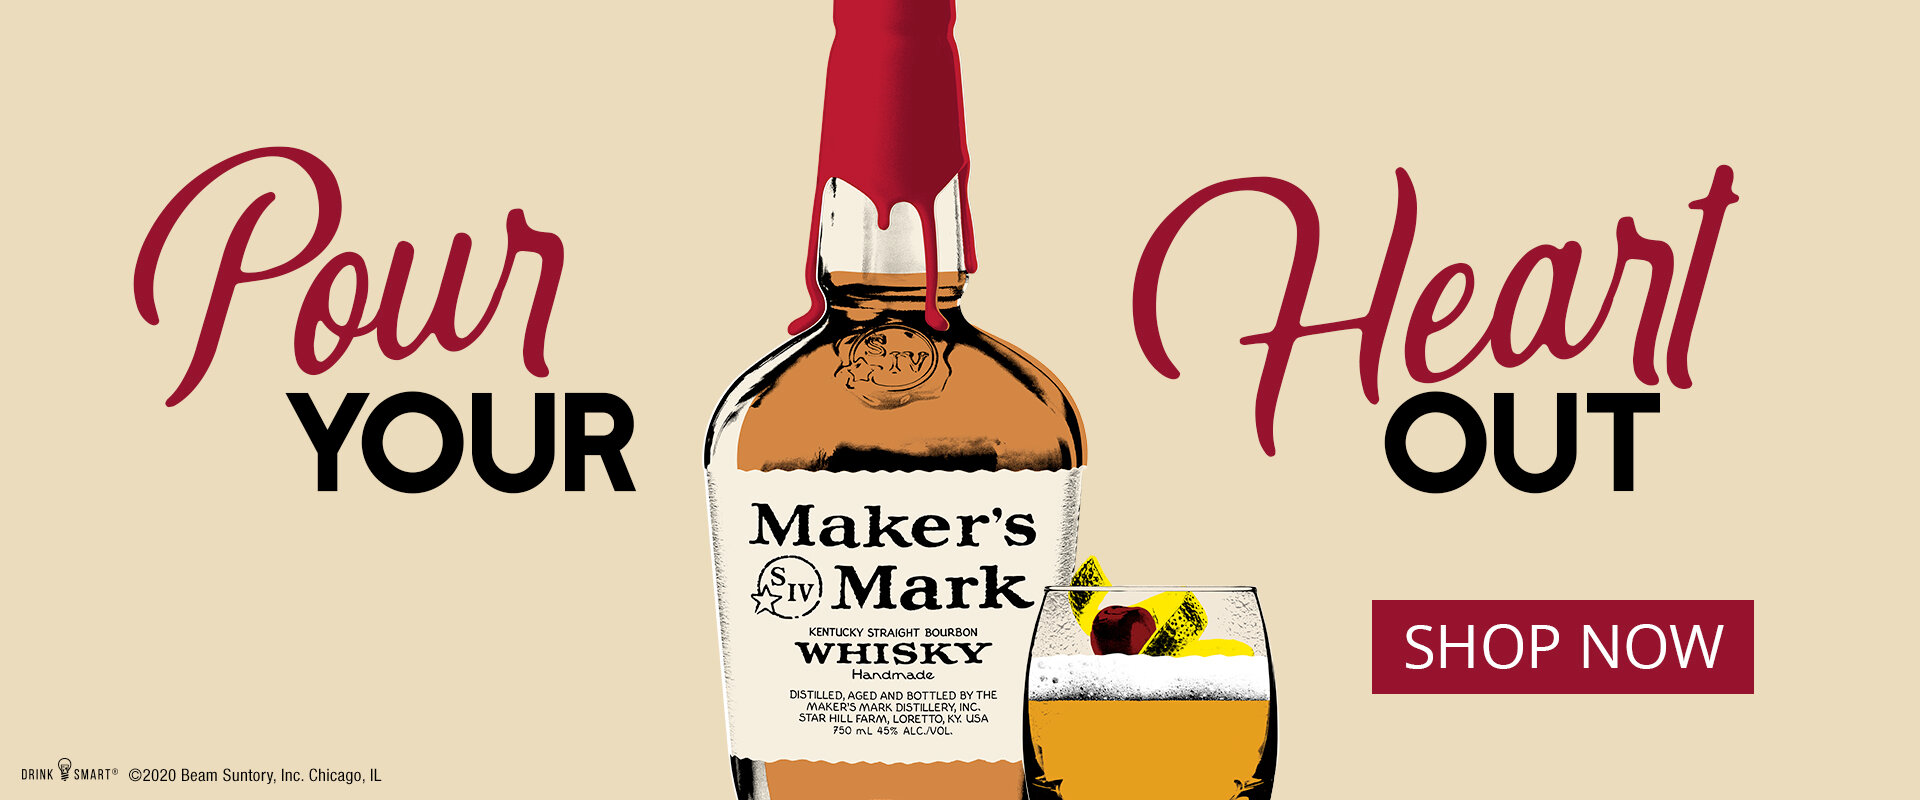 Pour your heart out - Maker's Mark Whiskey: Shop Now